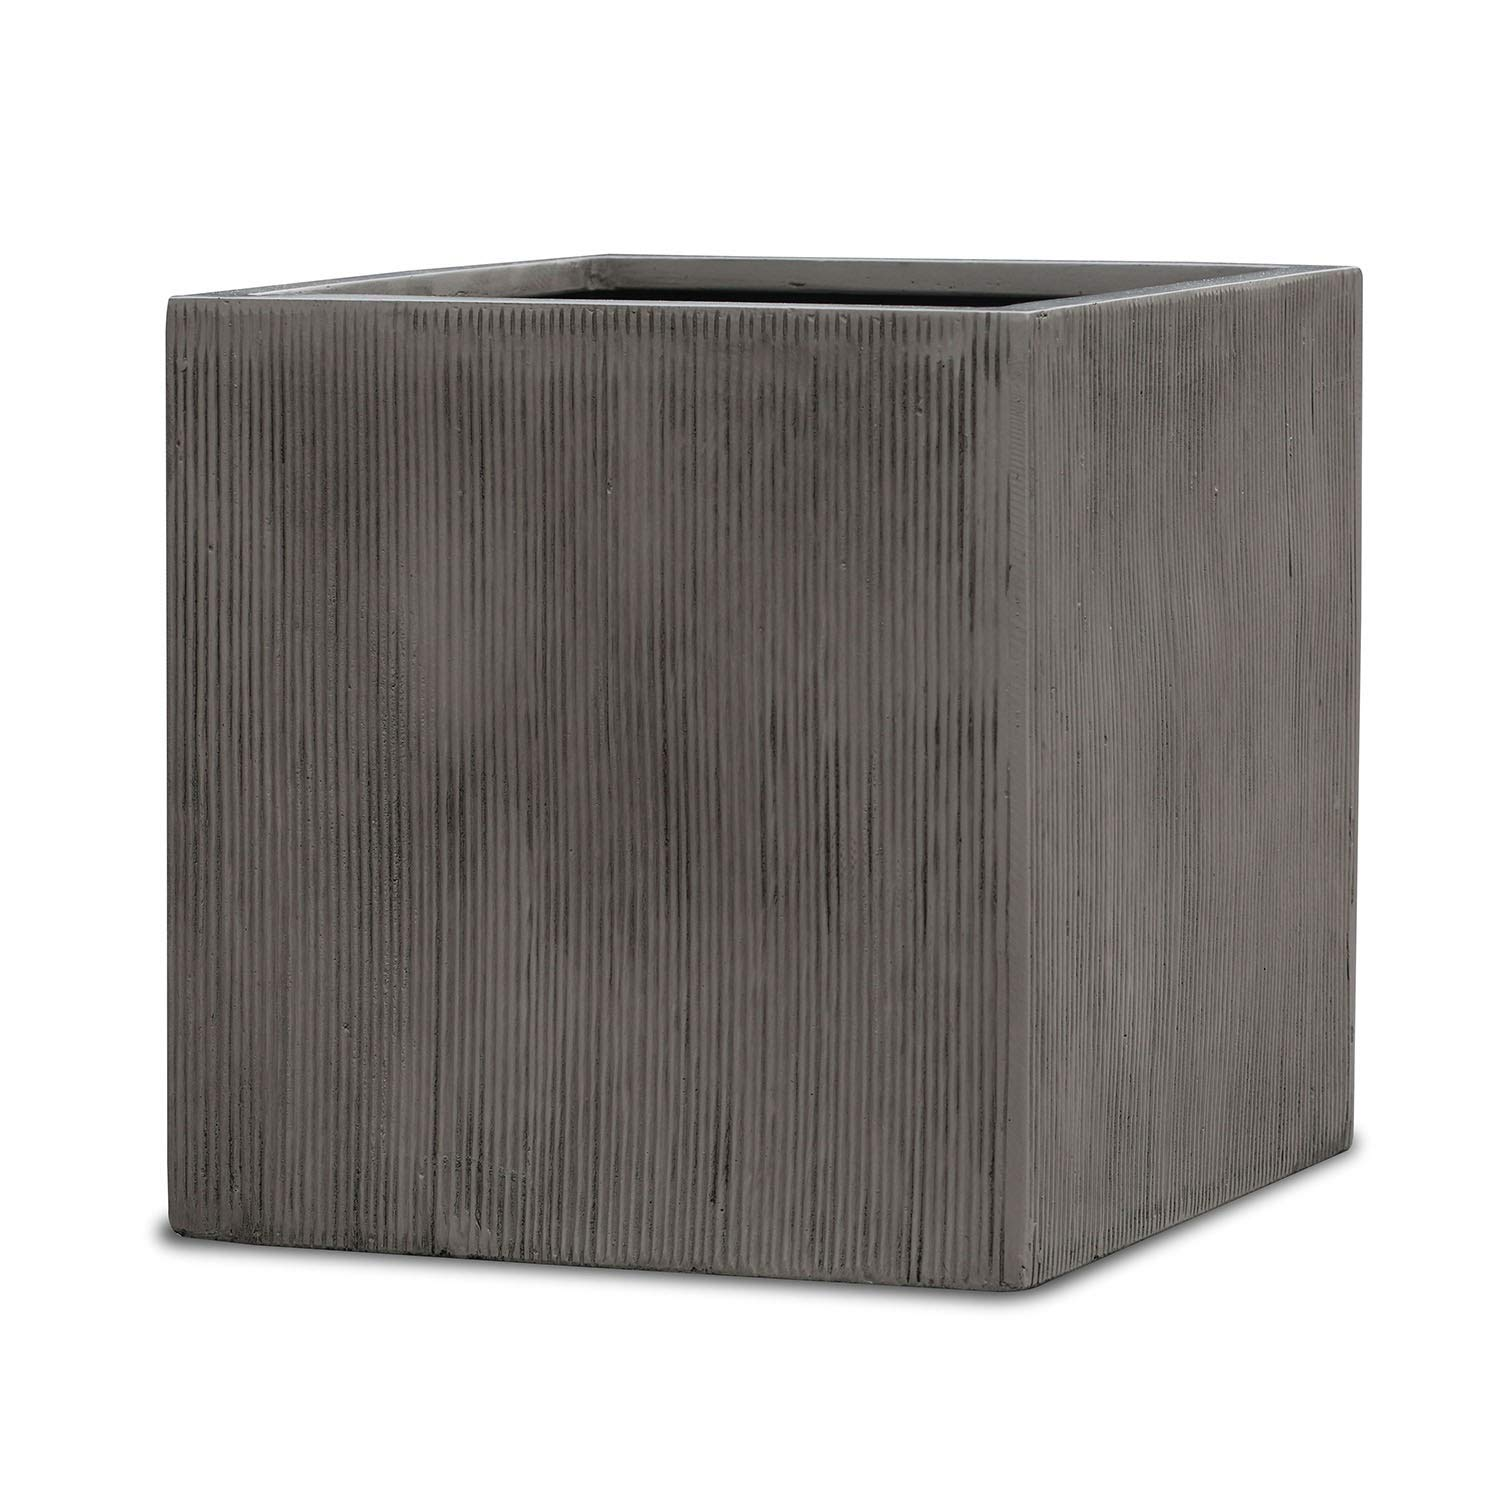 Square Planter - Cube Shaped Vertical Line Indoor Outdoor Flower Pot Brown Cement Color (20'' Inch)